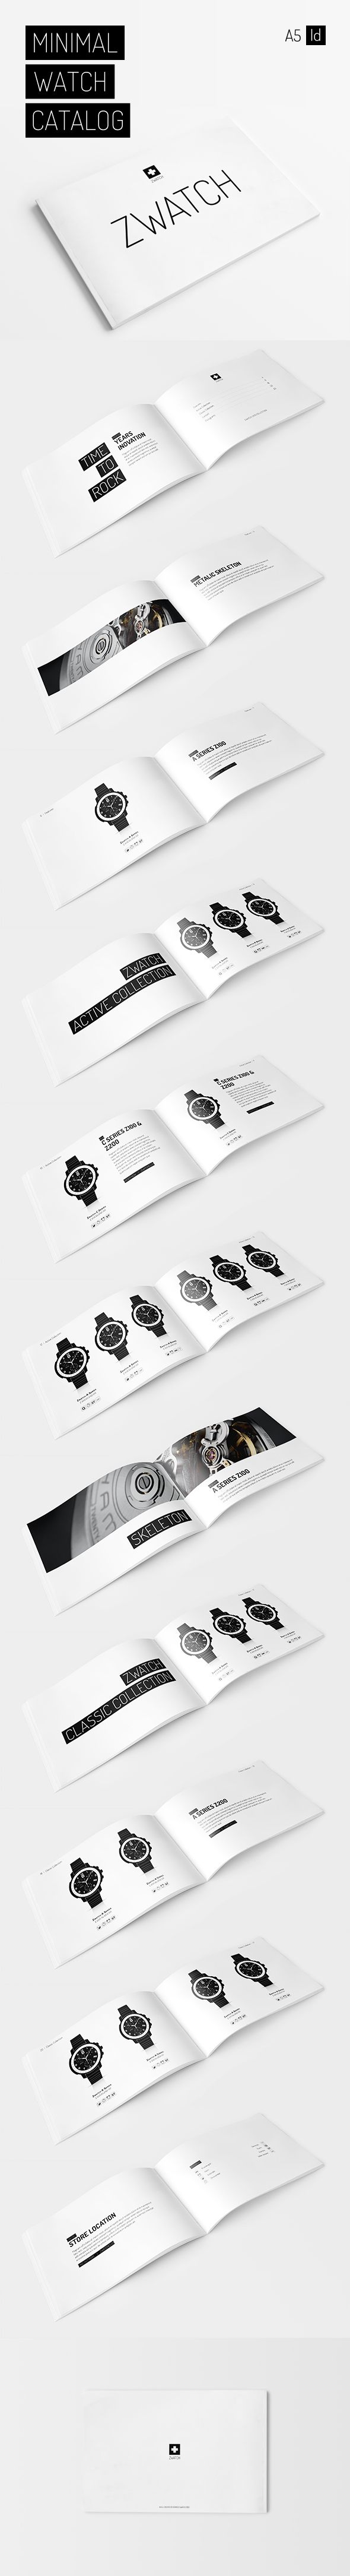 Minimal Watch Catalog on Behance